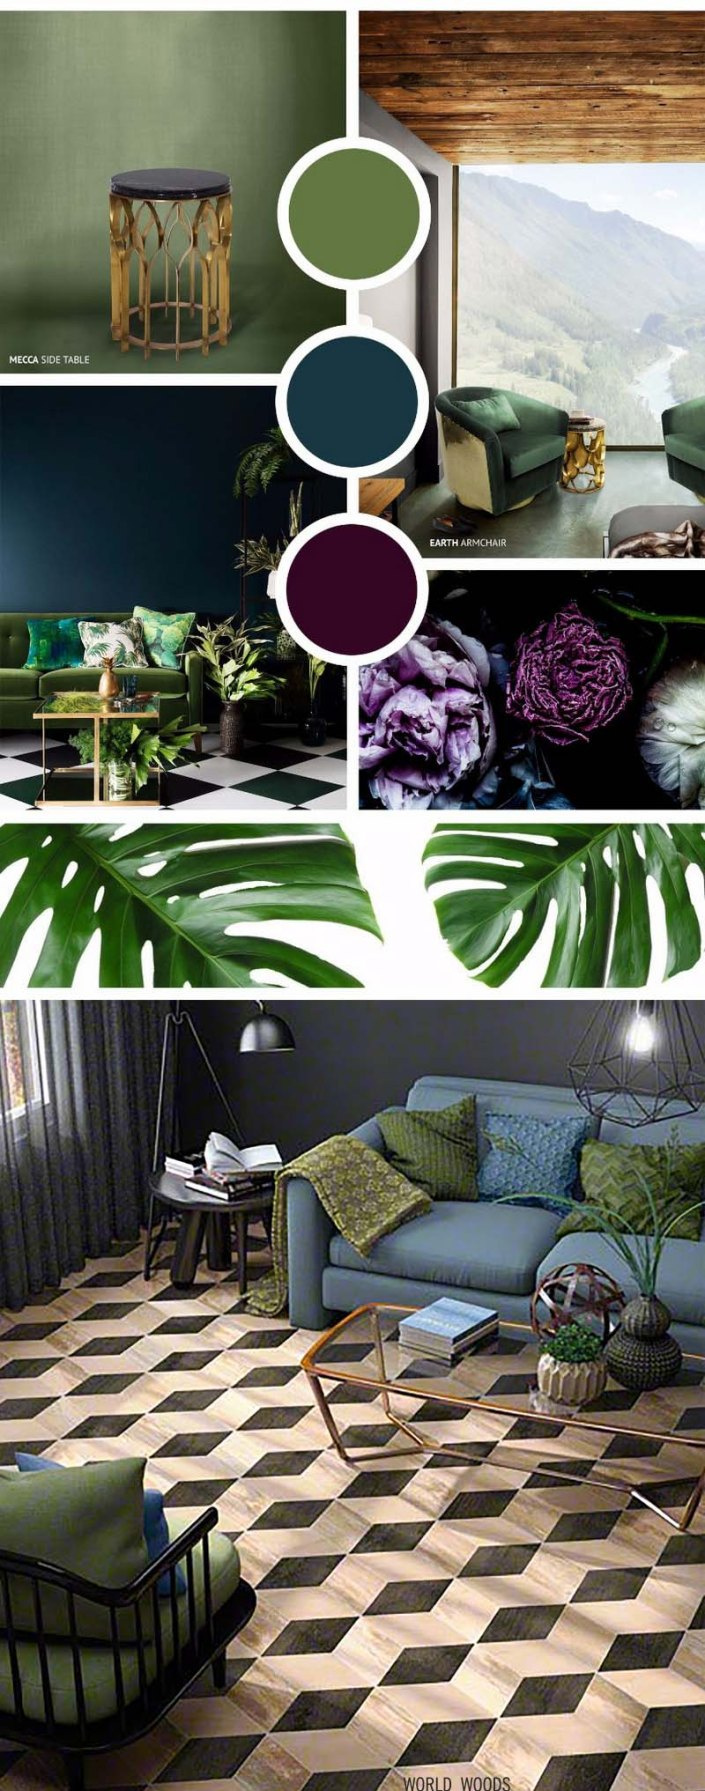 4_Decorate-Your-Interiors-Using-Pantones-2018-Colour-Trends-Predictions-8